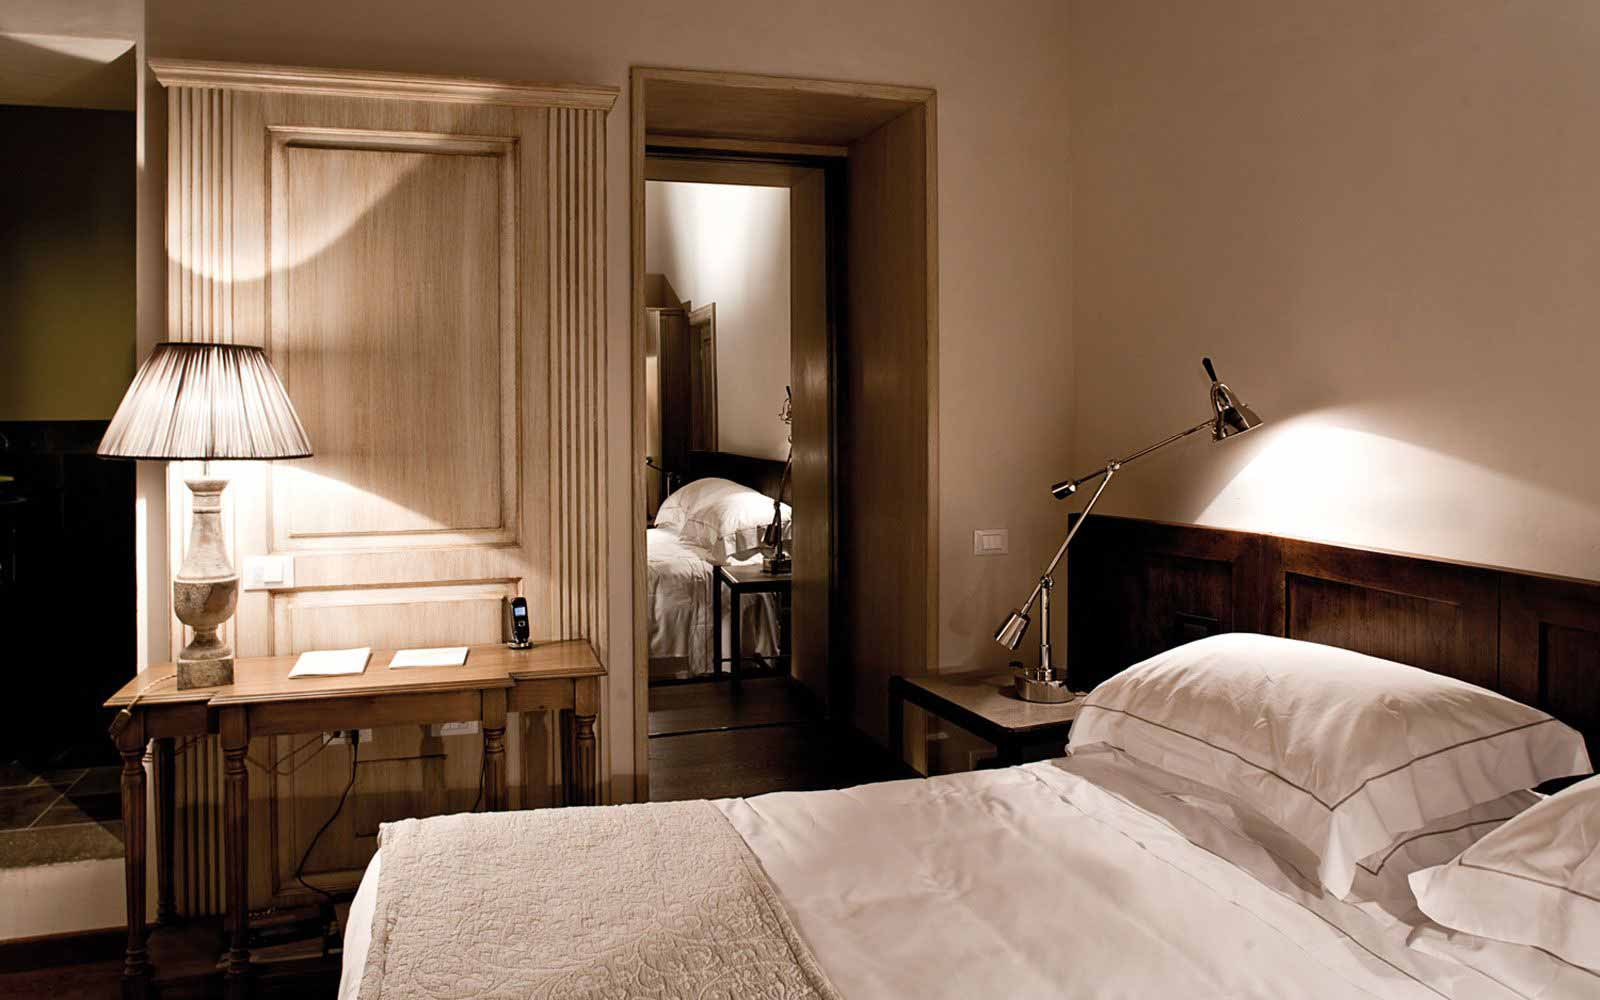 Superior room at Castel Monastero Tuscan Resort & Spa